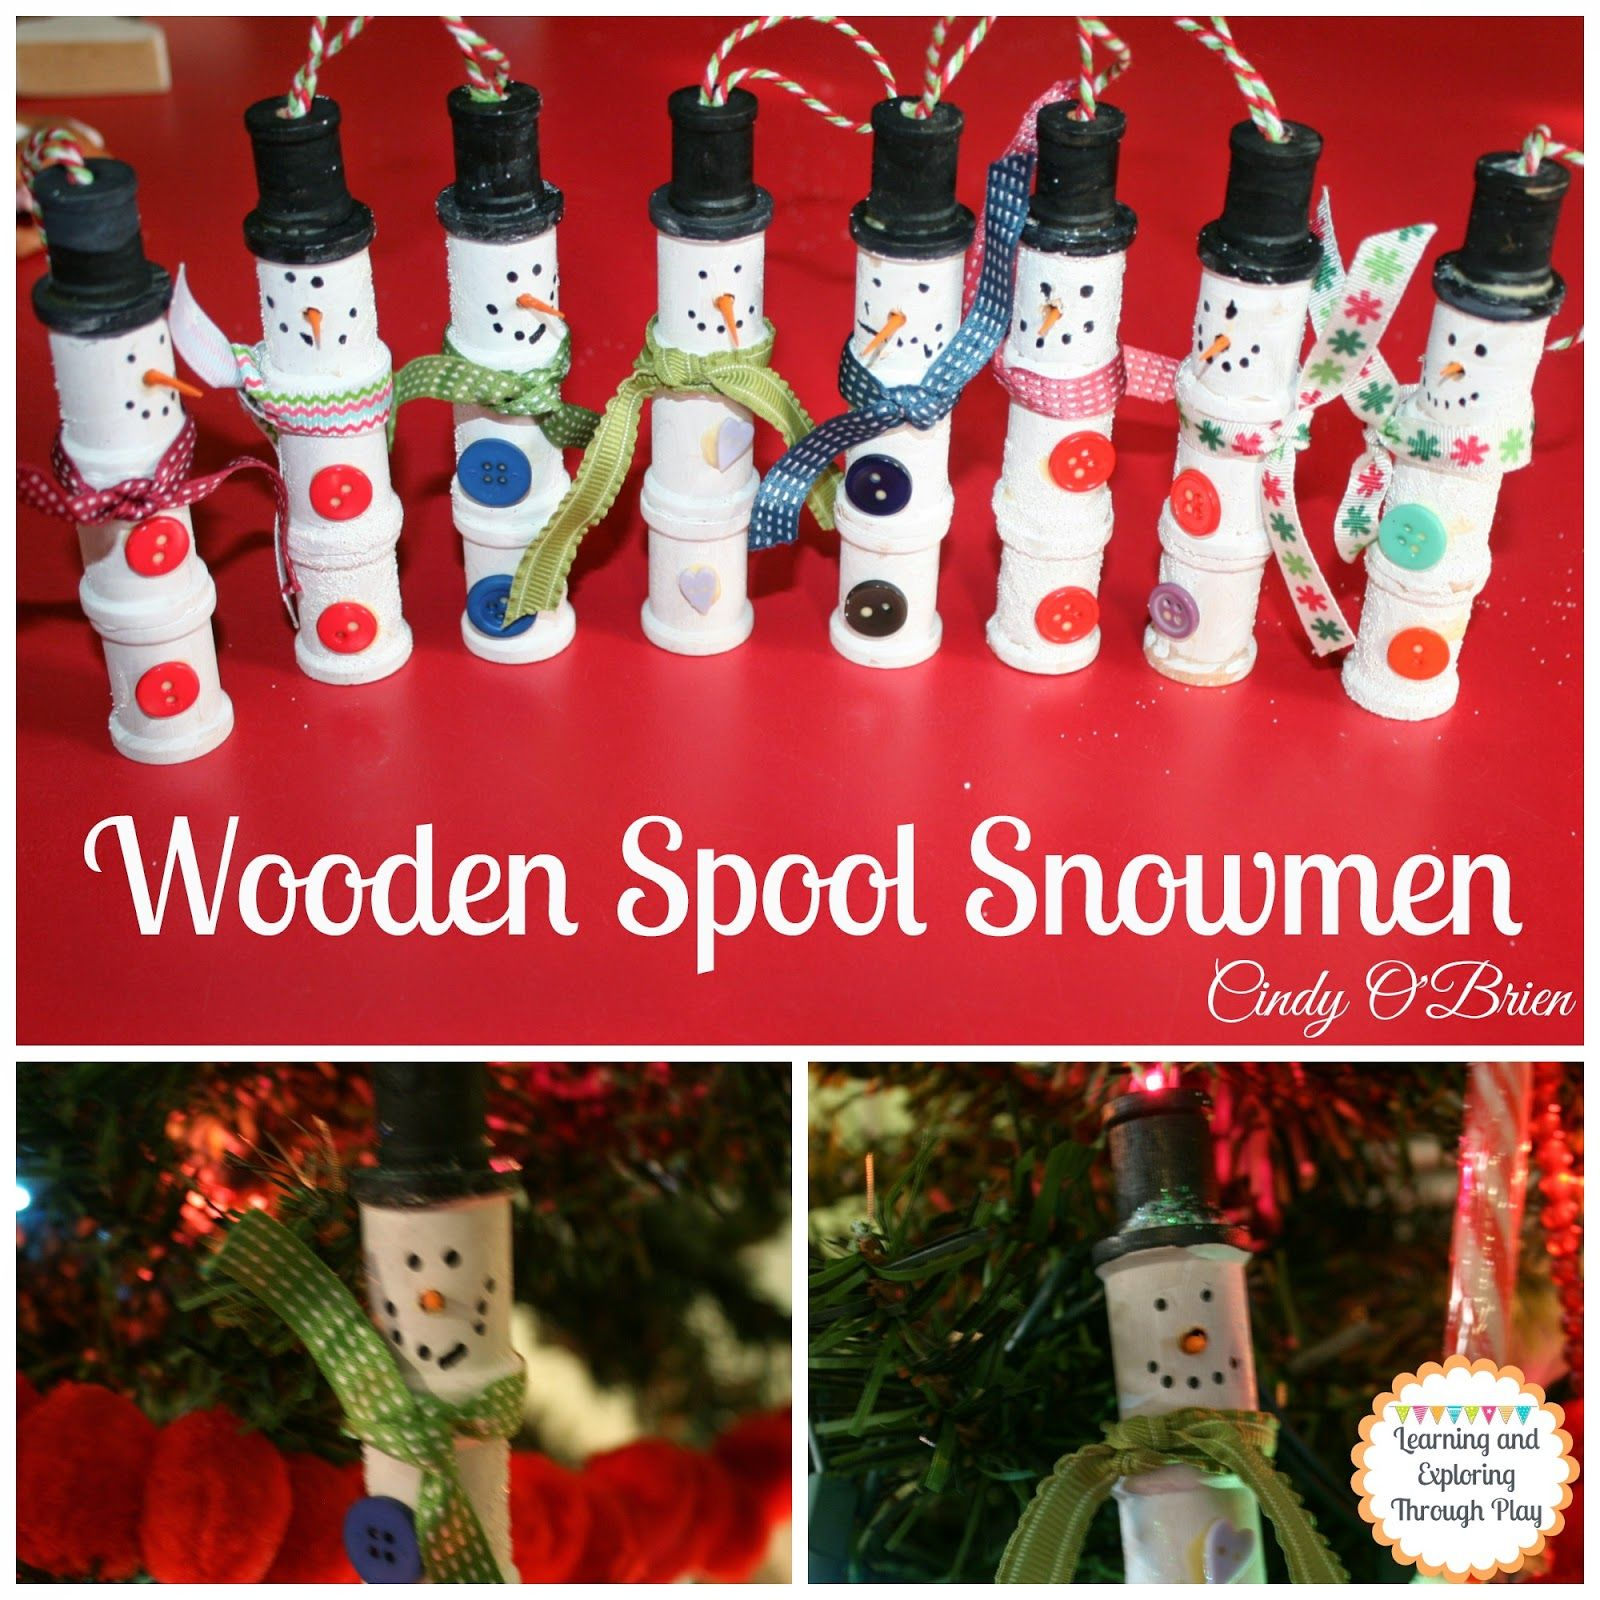 Learning And Exploring Through Play Wooden Spool Snowmen Spool Crafts Wooden Spools Winter Crafts For Kids